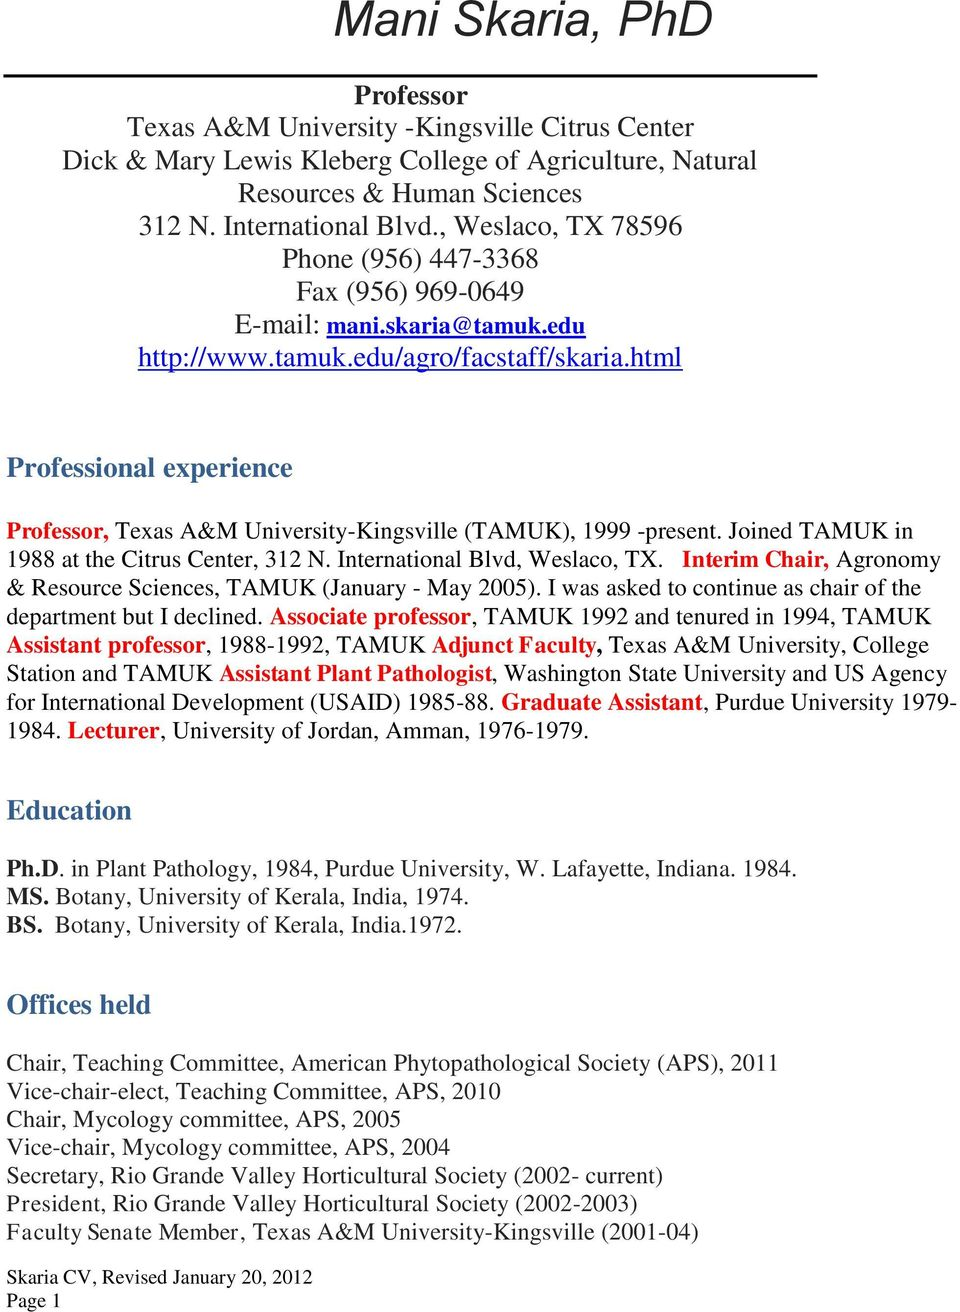 html Professional experience Professor, Texas A&M University-Kingsville (TAMUK), 1999 -present. Joined TAMUK in 1988 at the Citrus Center, 312 N. International Blvd, Weslaco, TX.